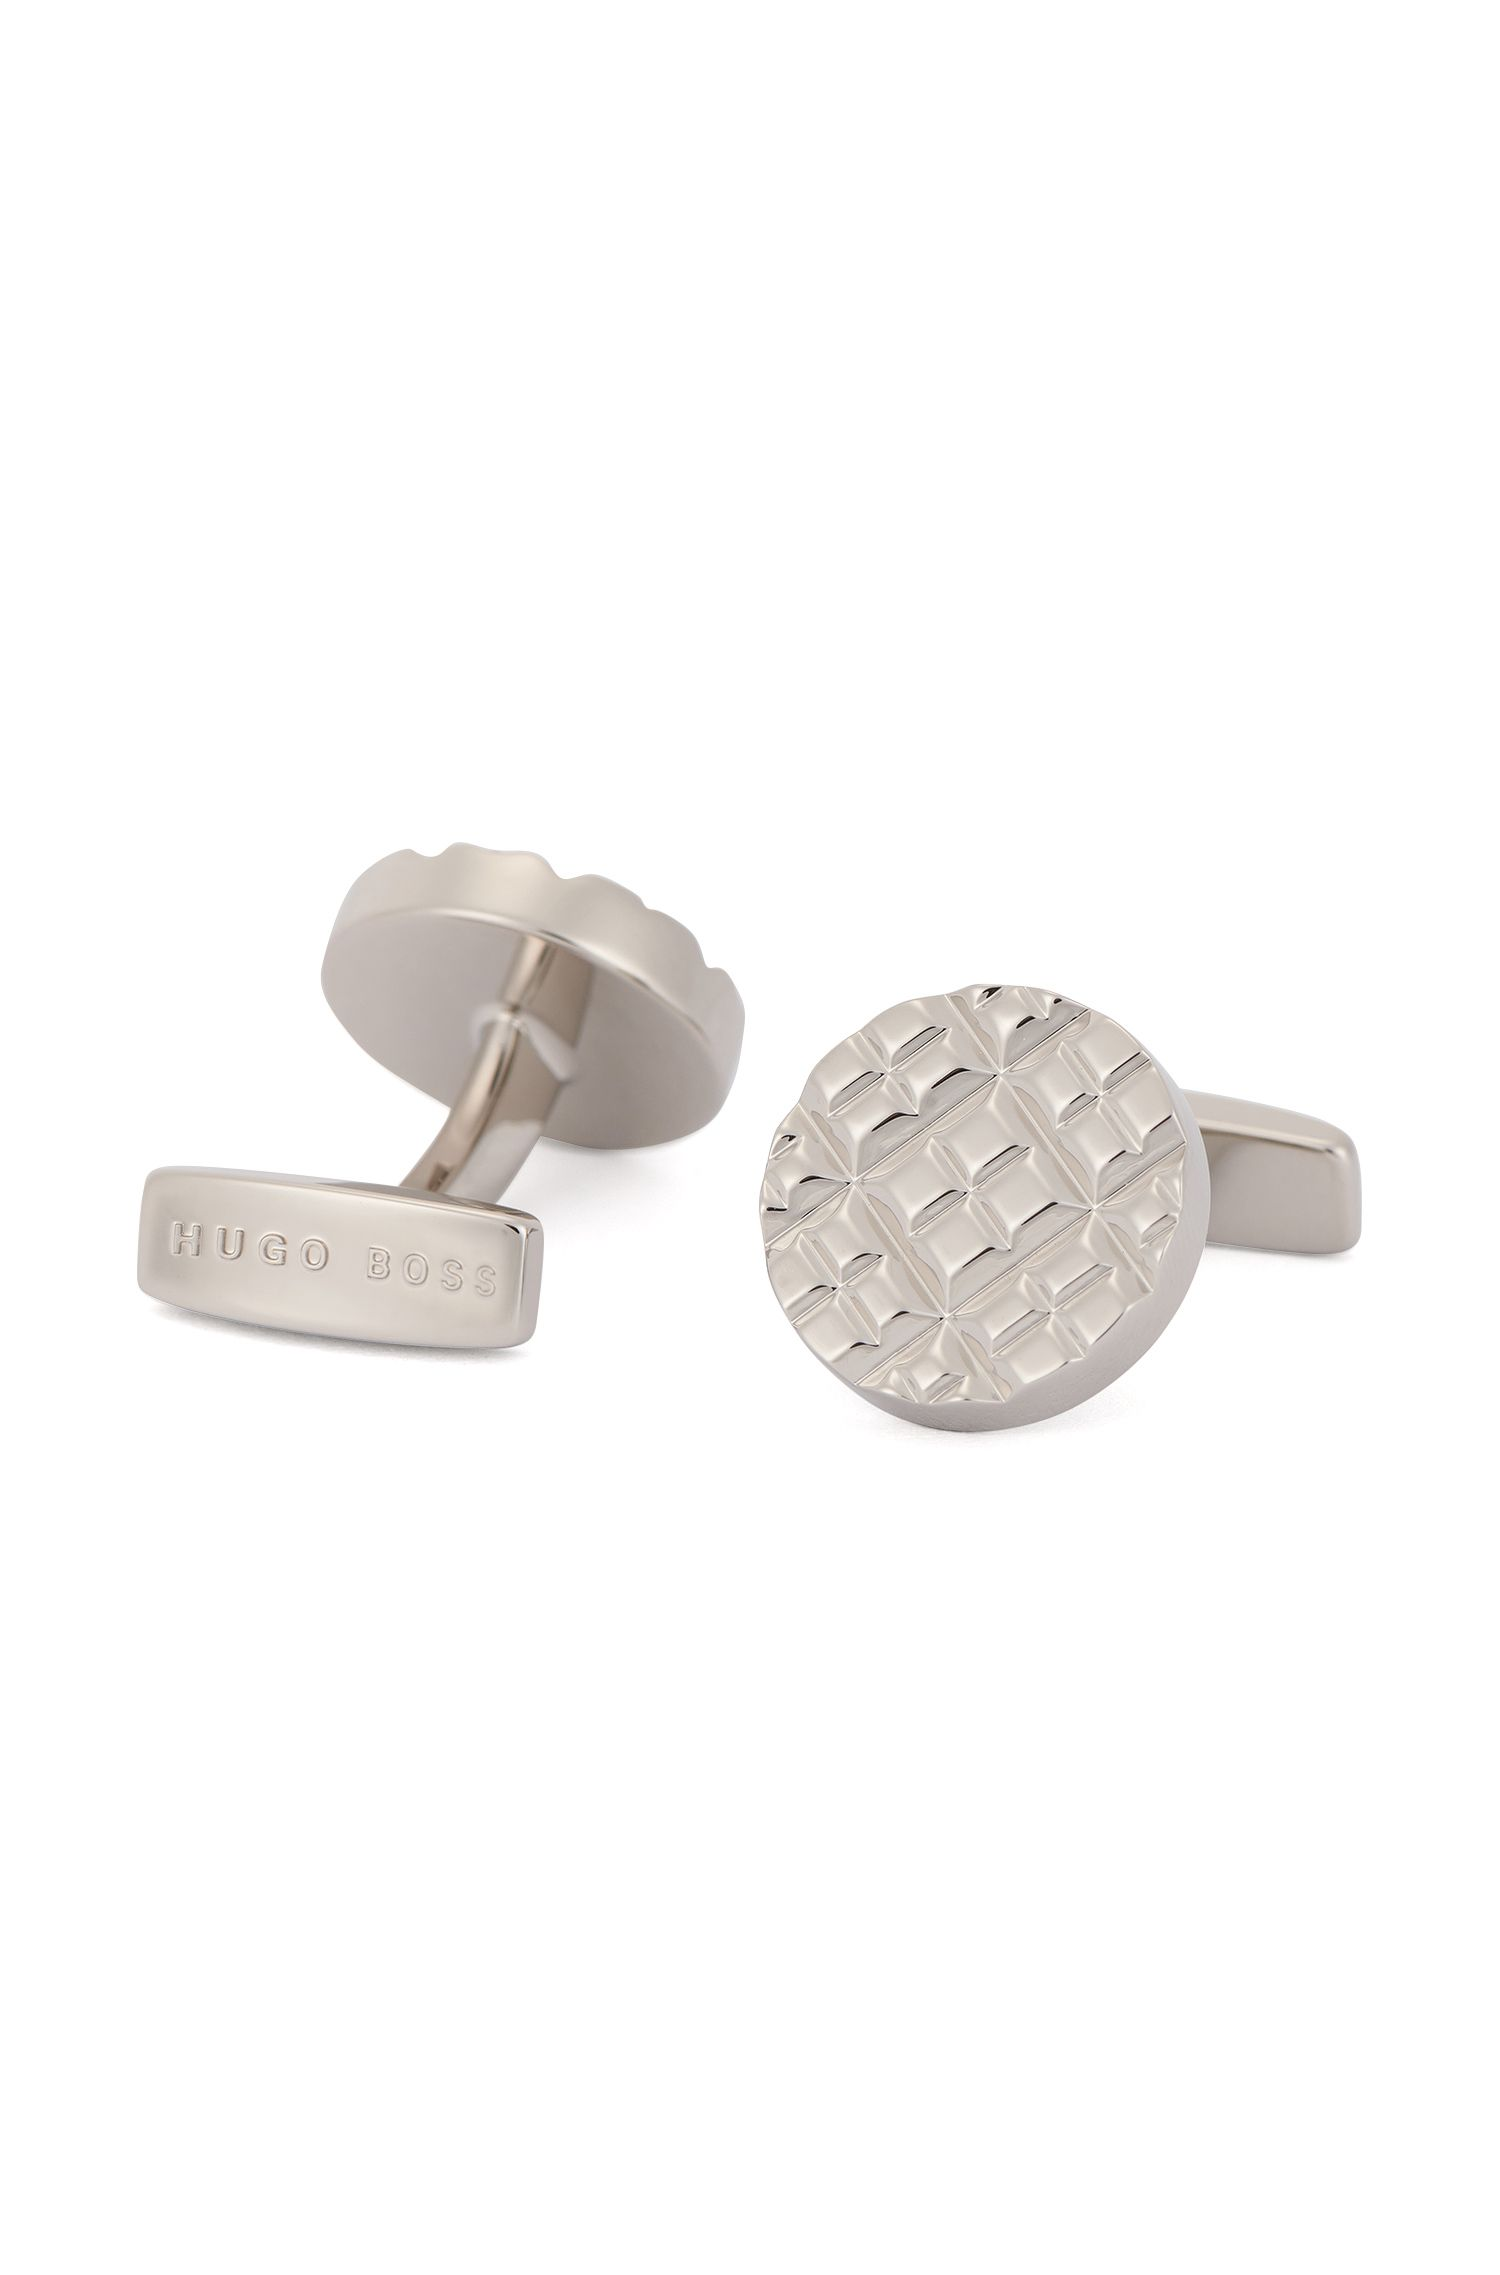 Round cufflinks in hand-polished brass